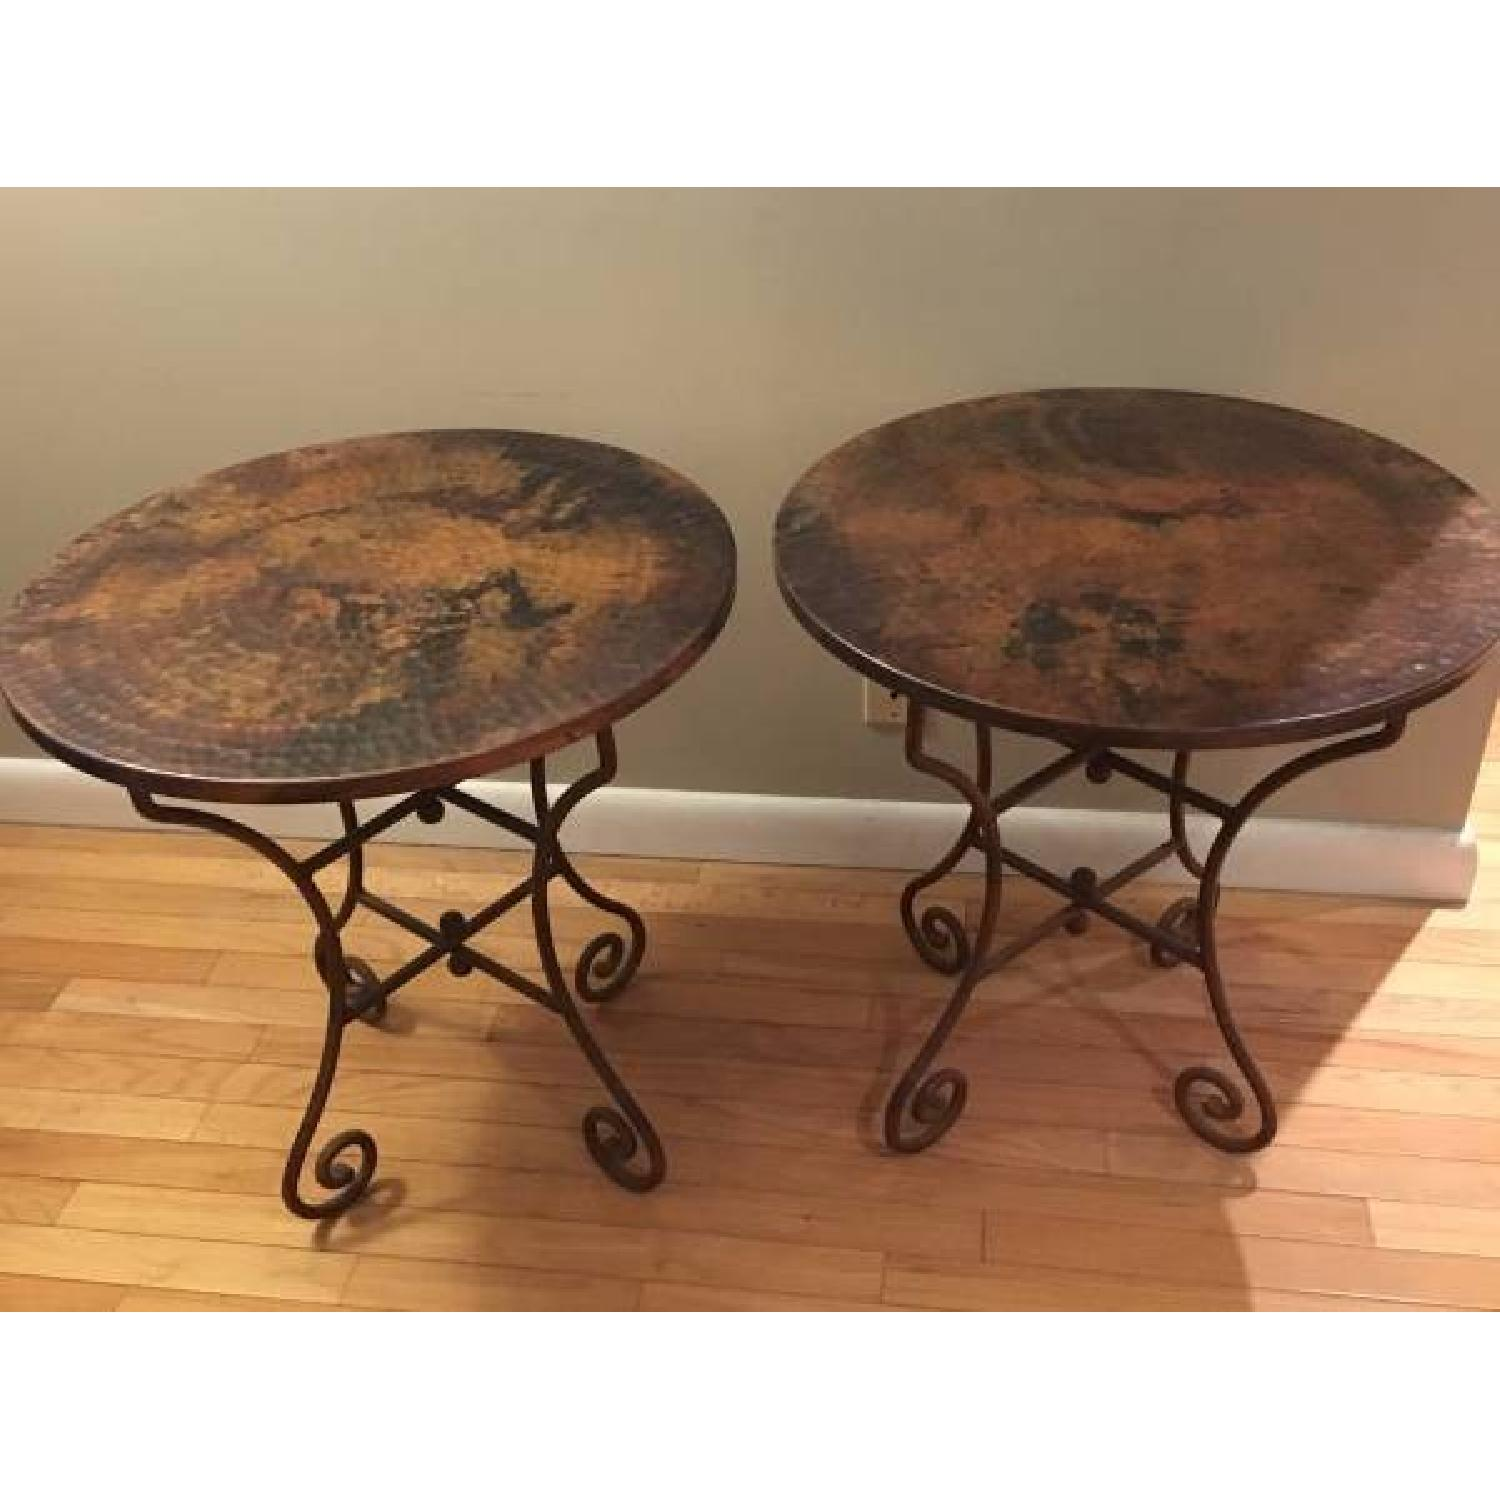 Hammered Copper Top End Tables - image-3